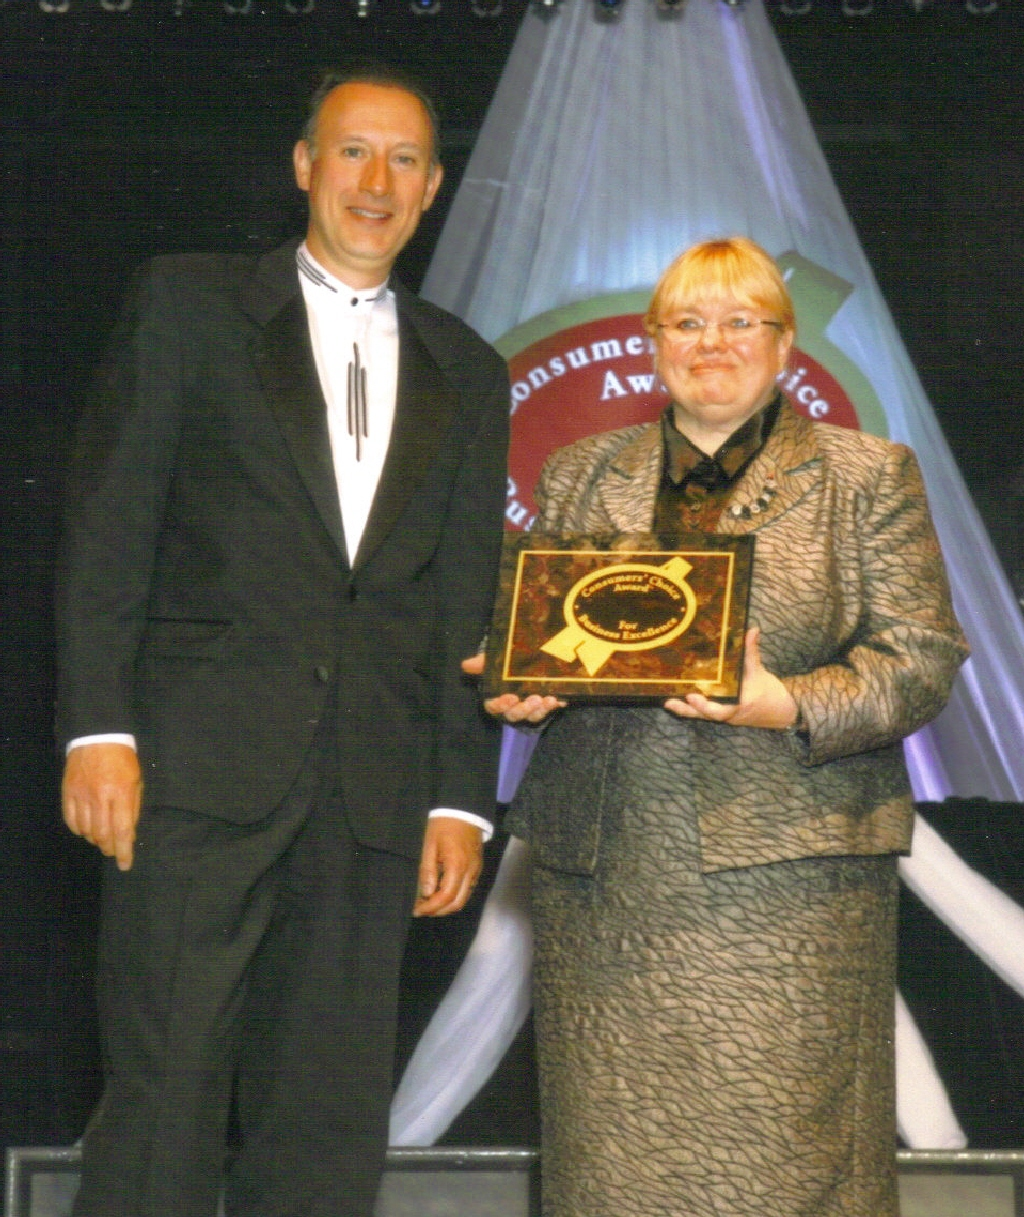 Dr. McKenzie accepts the Consumers Choice Award 2008